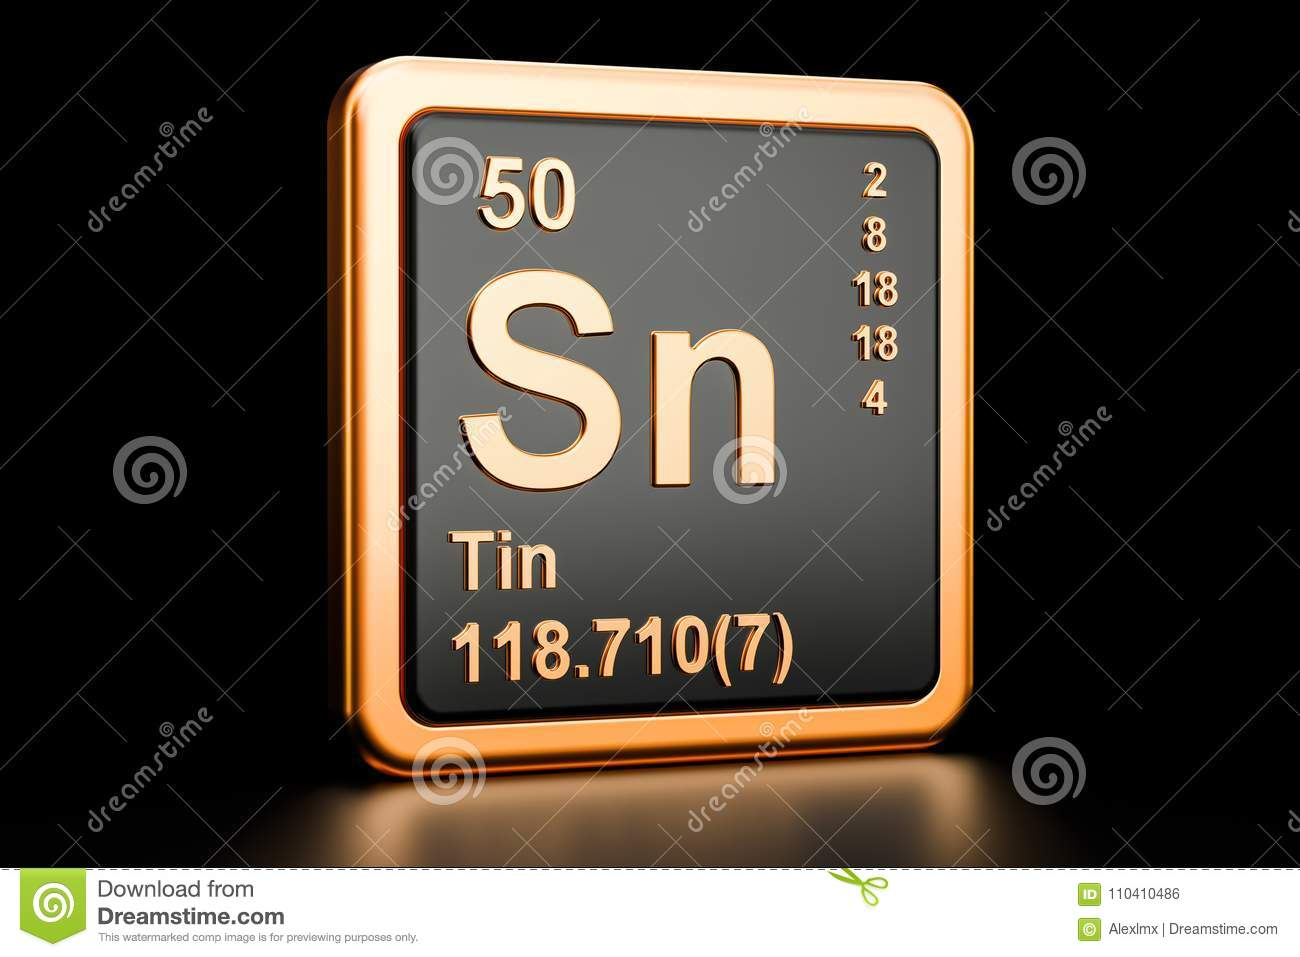 Tin Stannum Sn Chemical Element 3d Rendering Stock Illustration